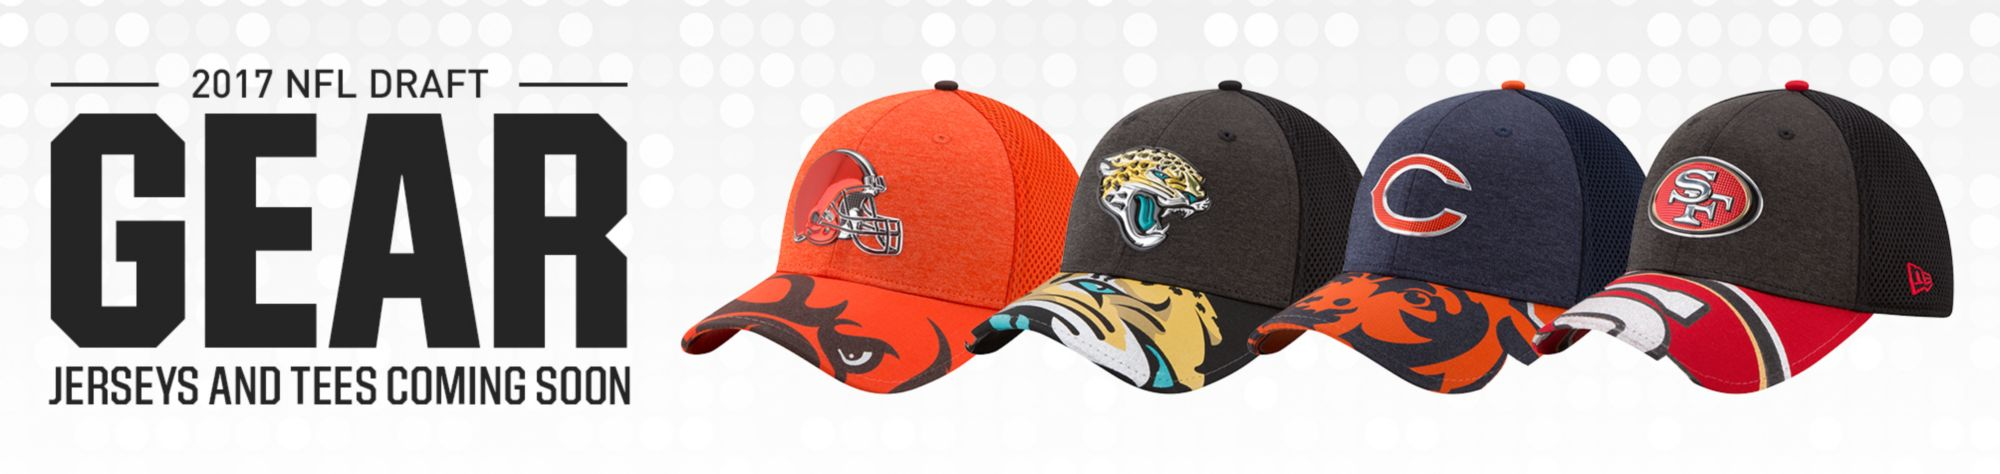 2017 NFL Draft Gear